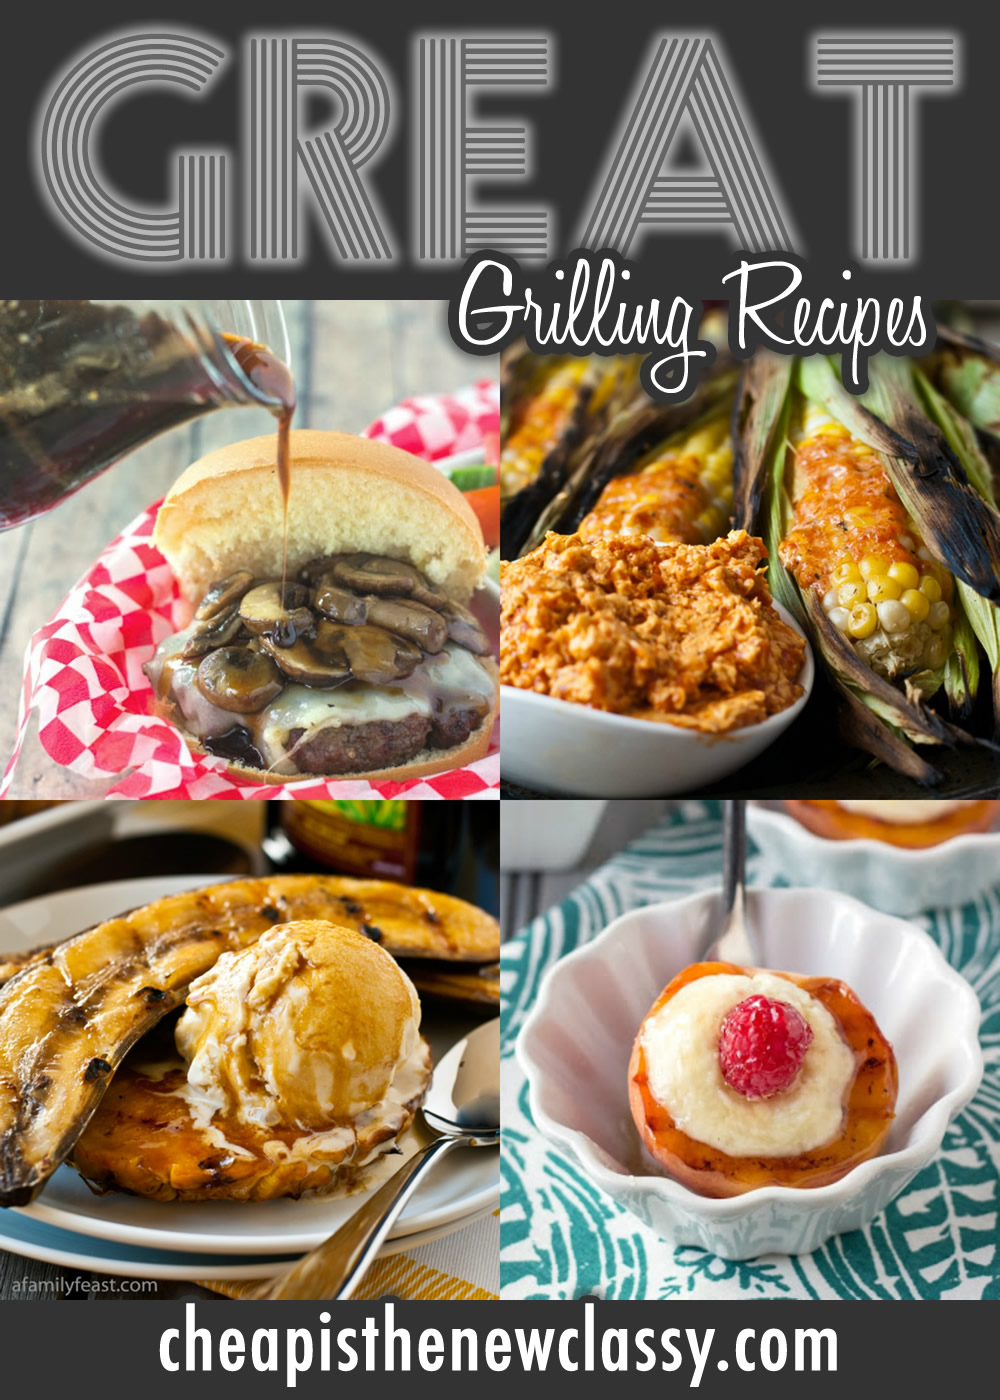 12 Great Grilling Recipes To Whet Your Appetite This Summer | Cheap Is The New Classy